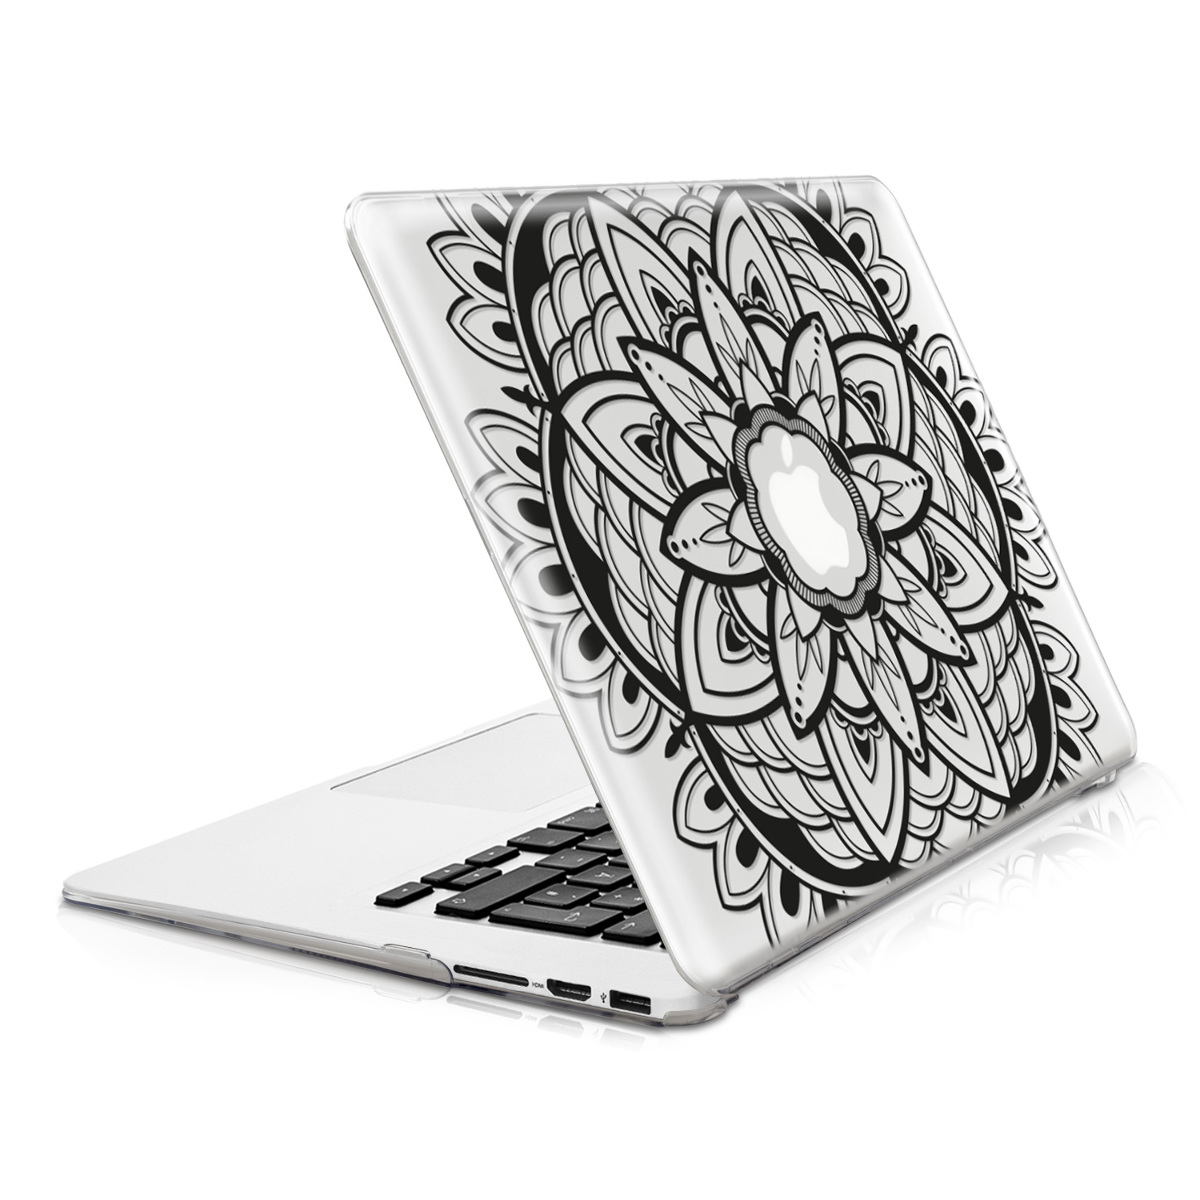 ETUI-TRANSPARENT-POUR-APPLE-MACBOOK-AIR-13-034-A-PARTIR-DE-MI-2011-COQUE